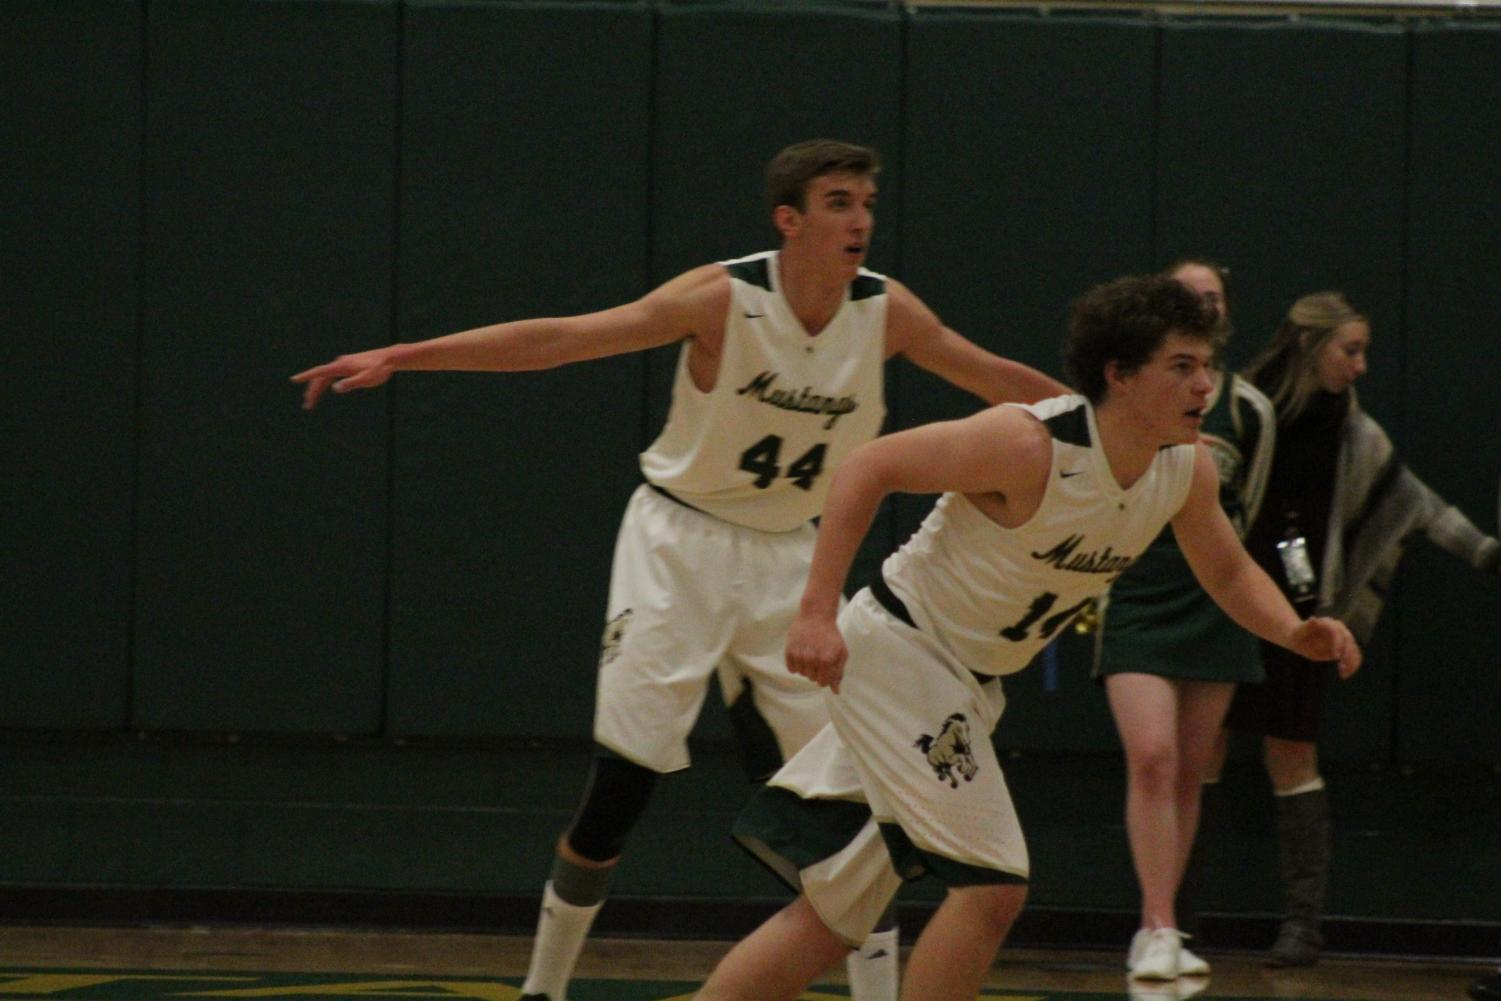 Senior players Hunter Zentz and Zach Perry-Perkins play defense in a game agains CSCS.